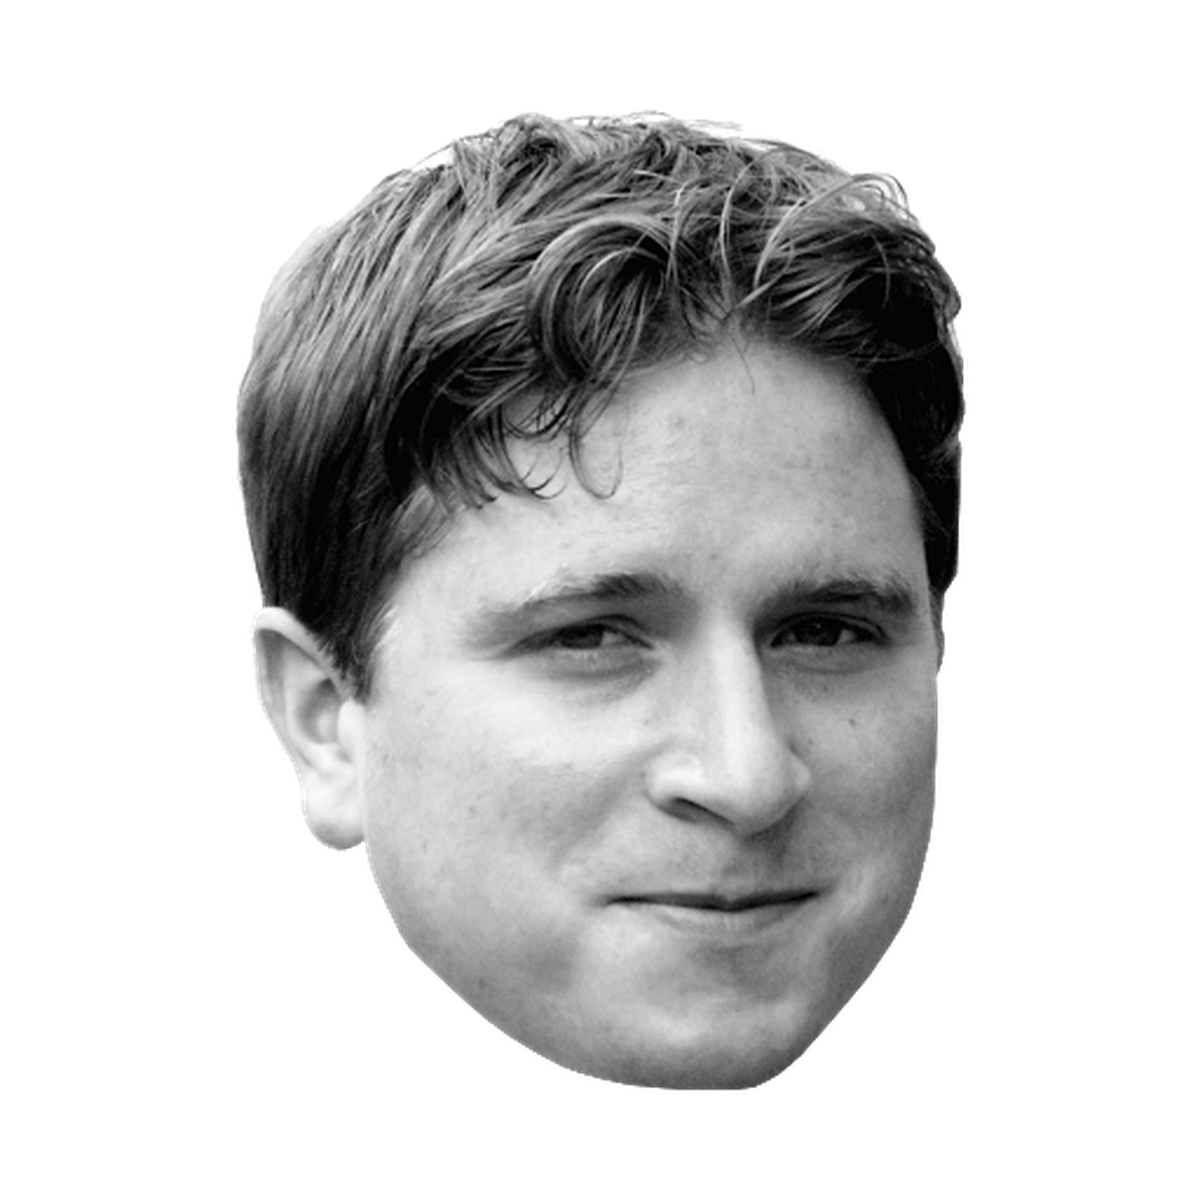 Lul emote png. Twitch emotes list the